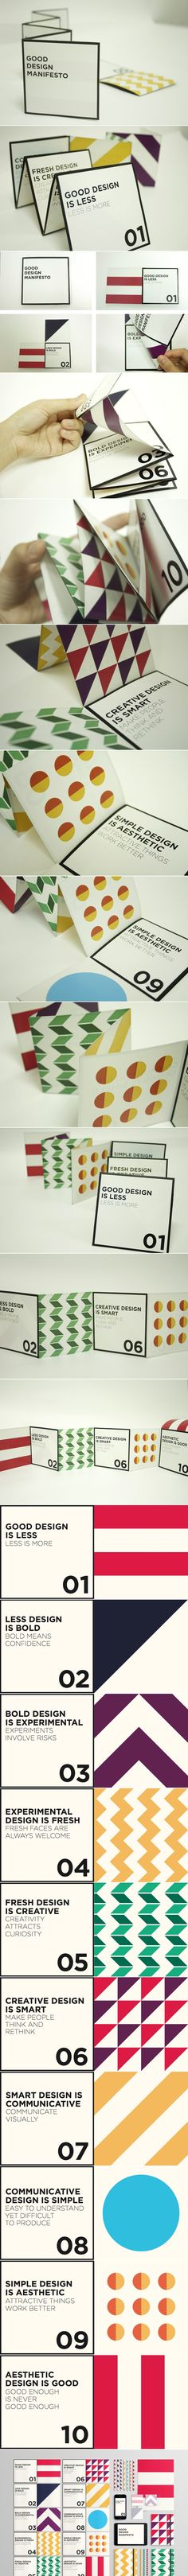 Good Design Manifesto - fold out #booklet or #brochure design